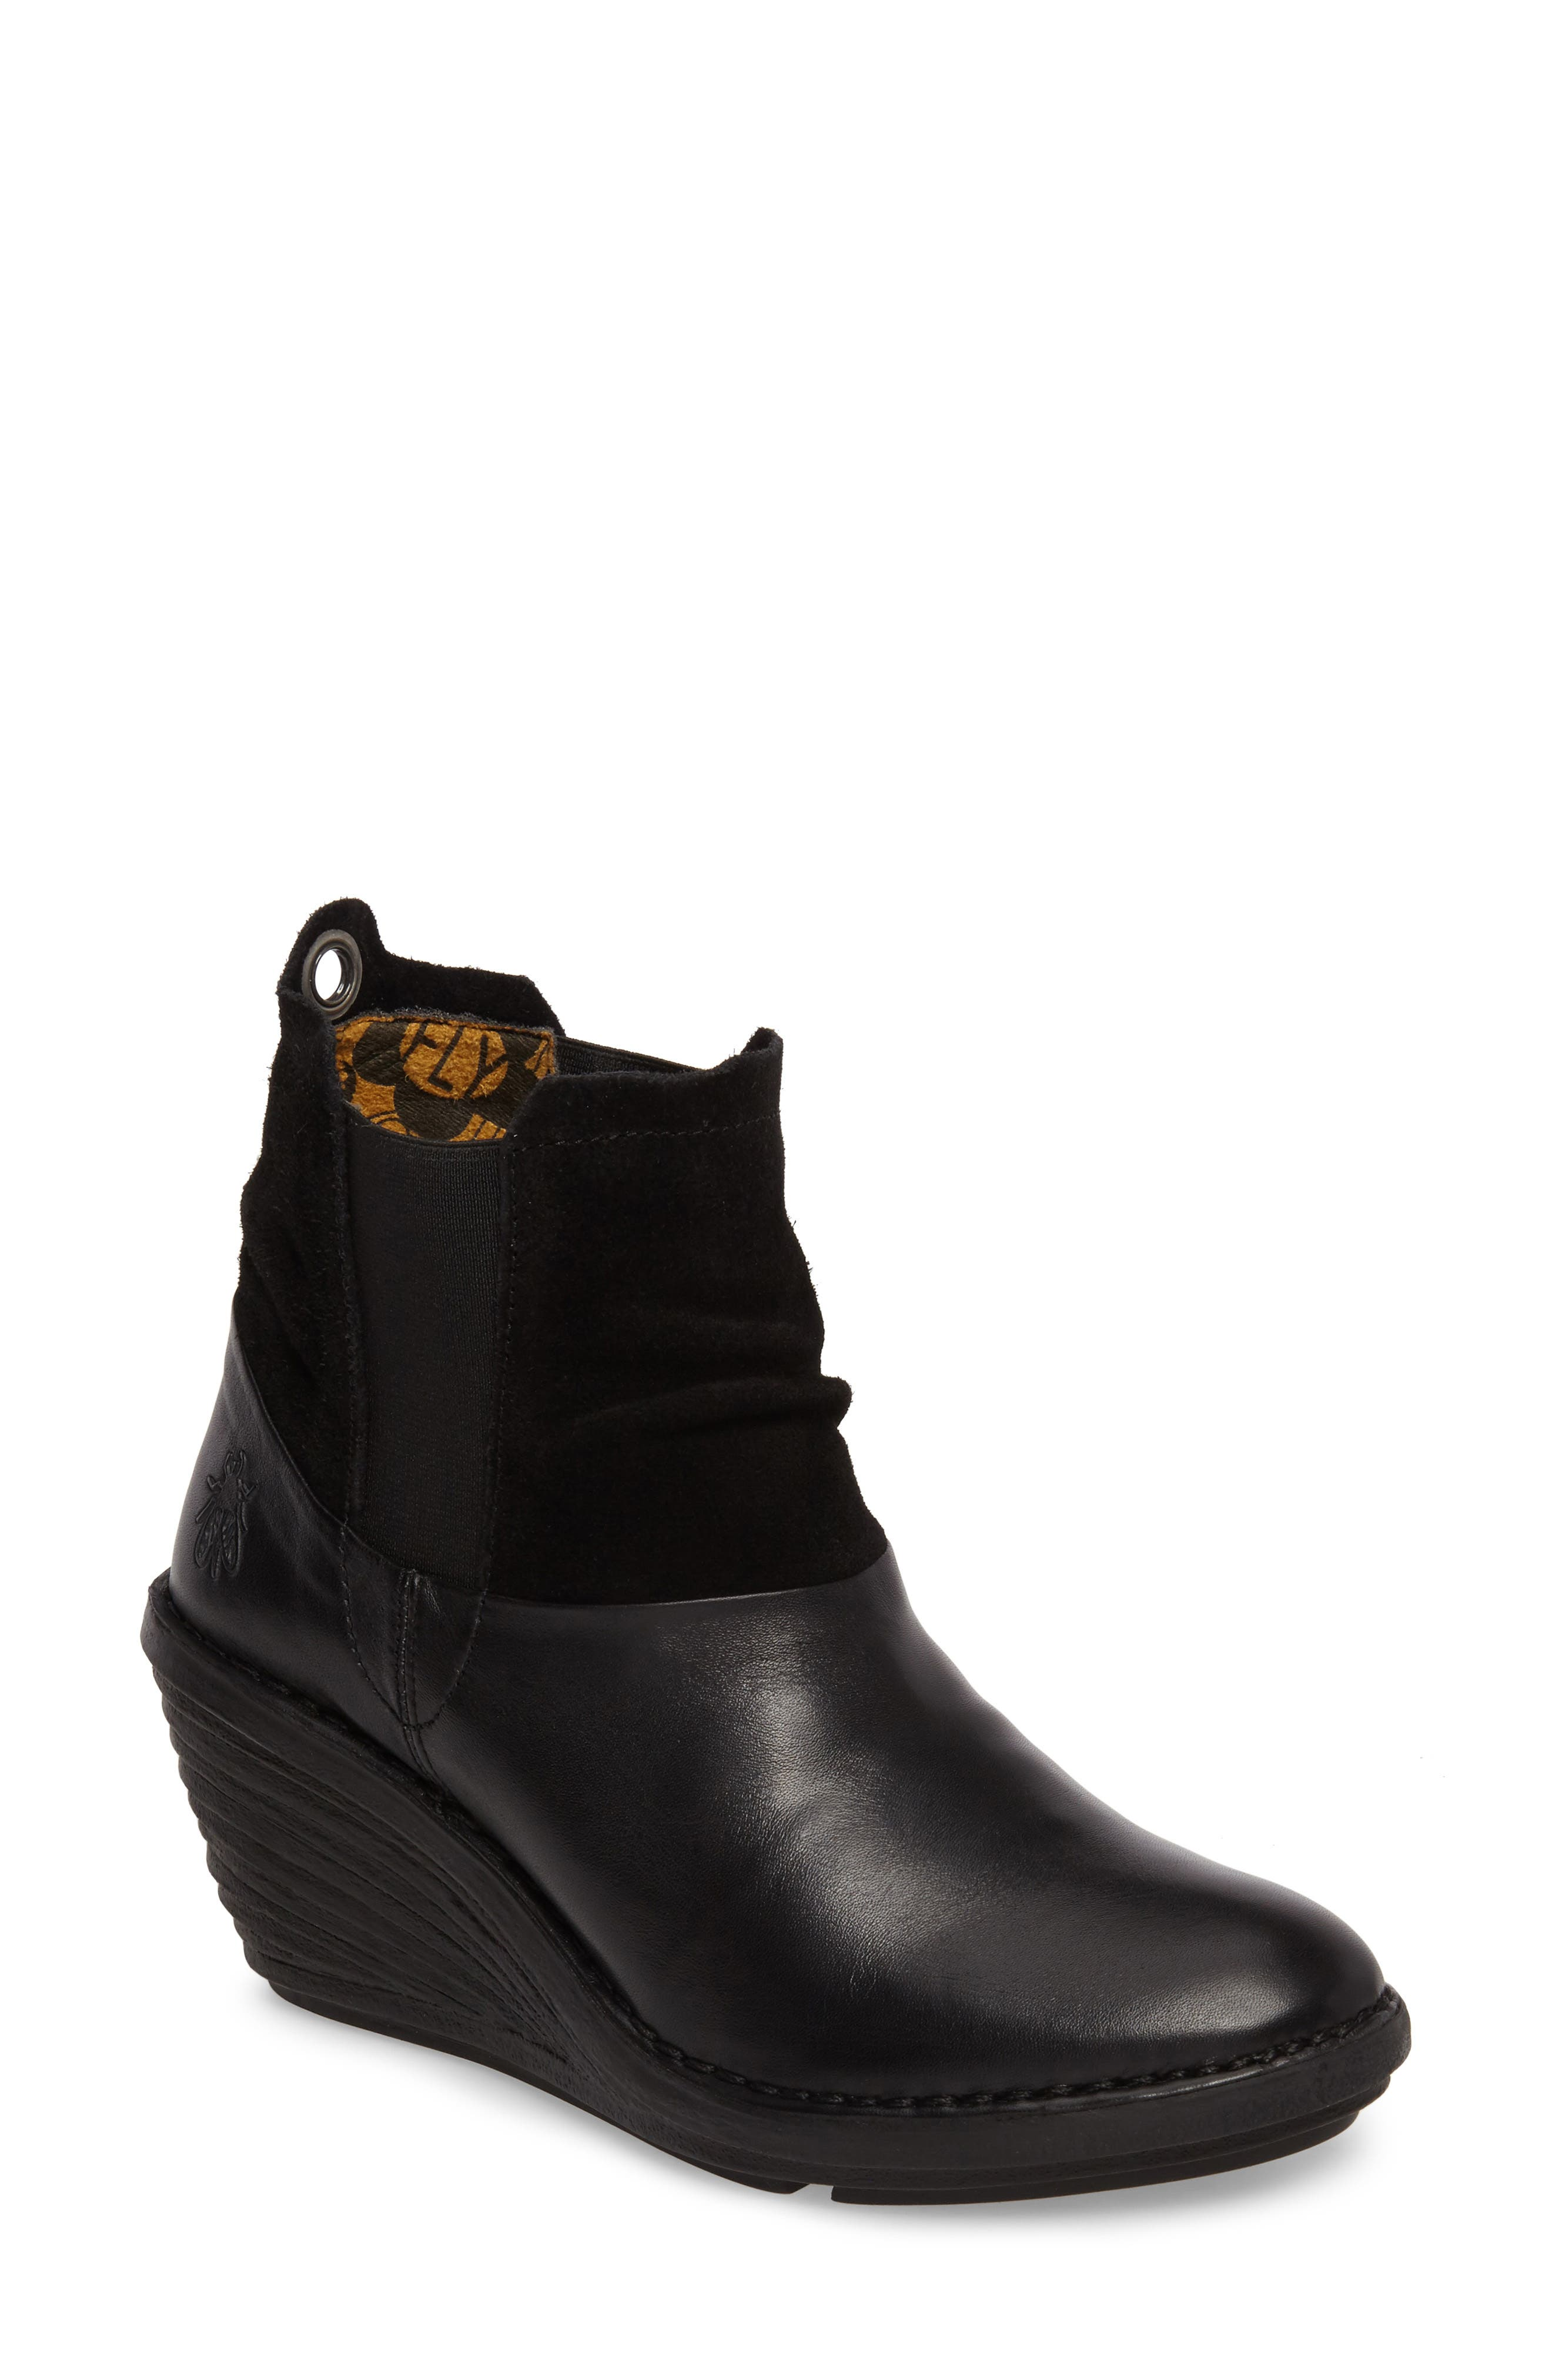 Alternate Image 1 Selected - Fly London Sula Wedge Bootie (Women)